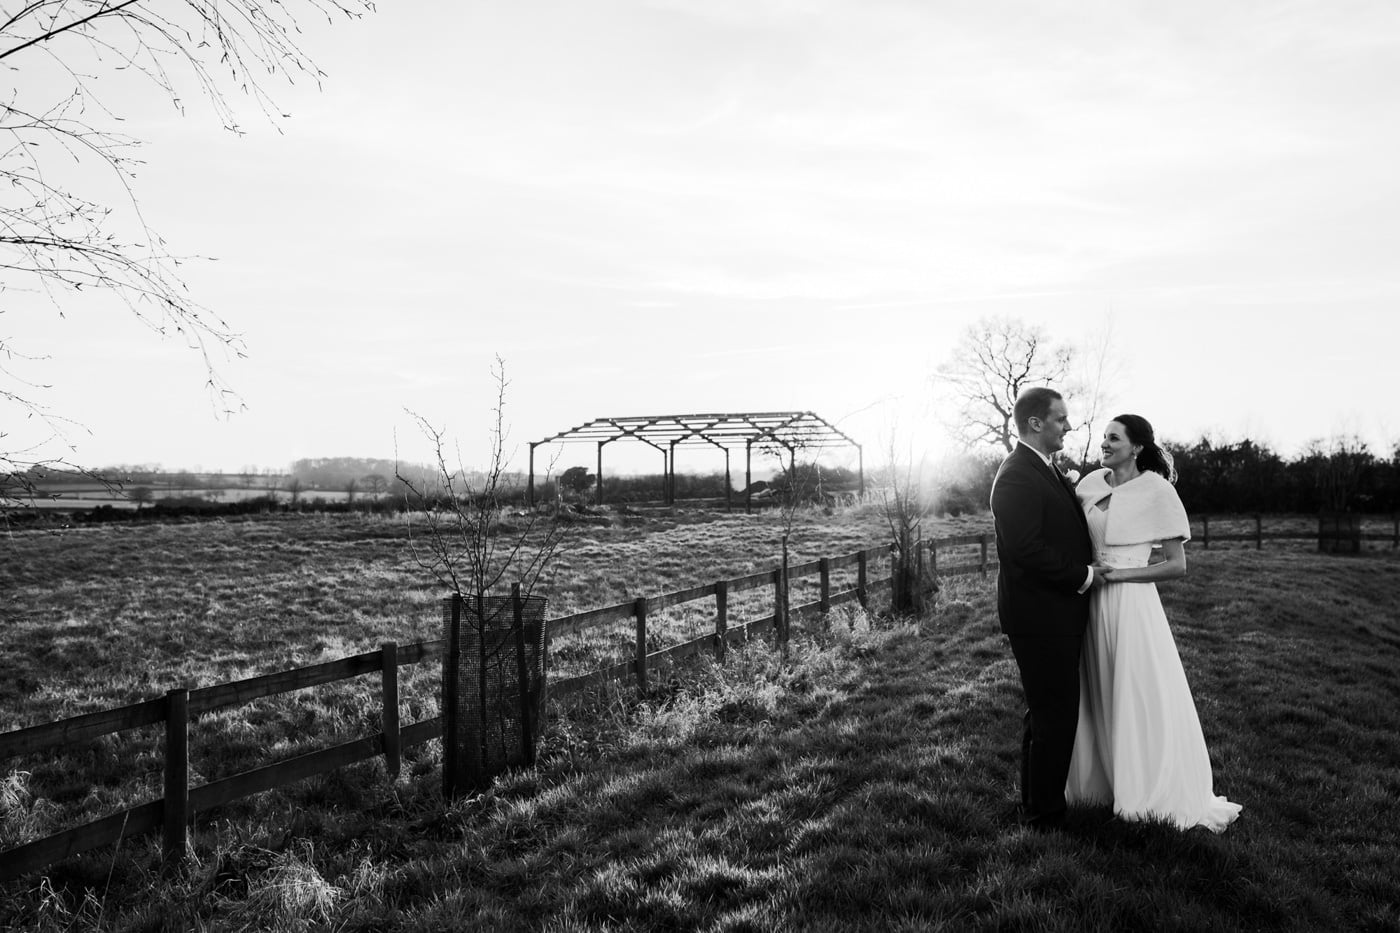 Ruth and Ben, Winkworth Farm, Wiltshire 30